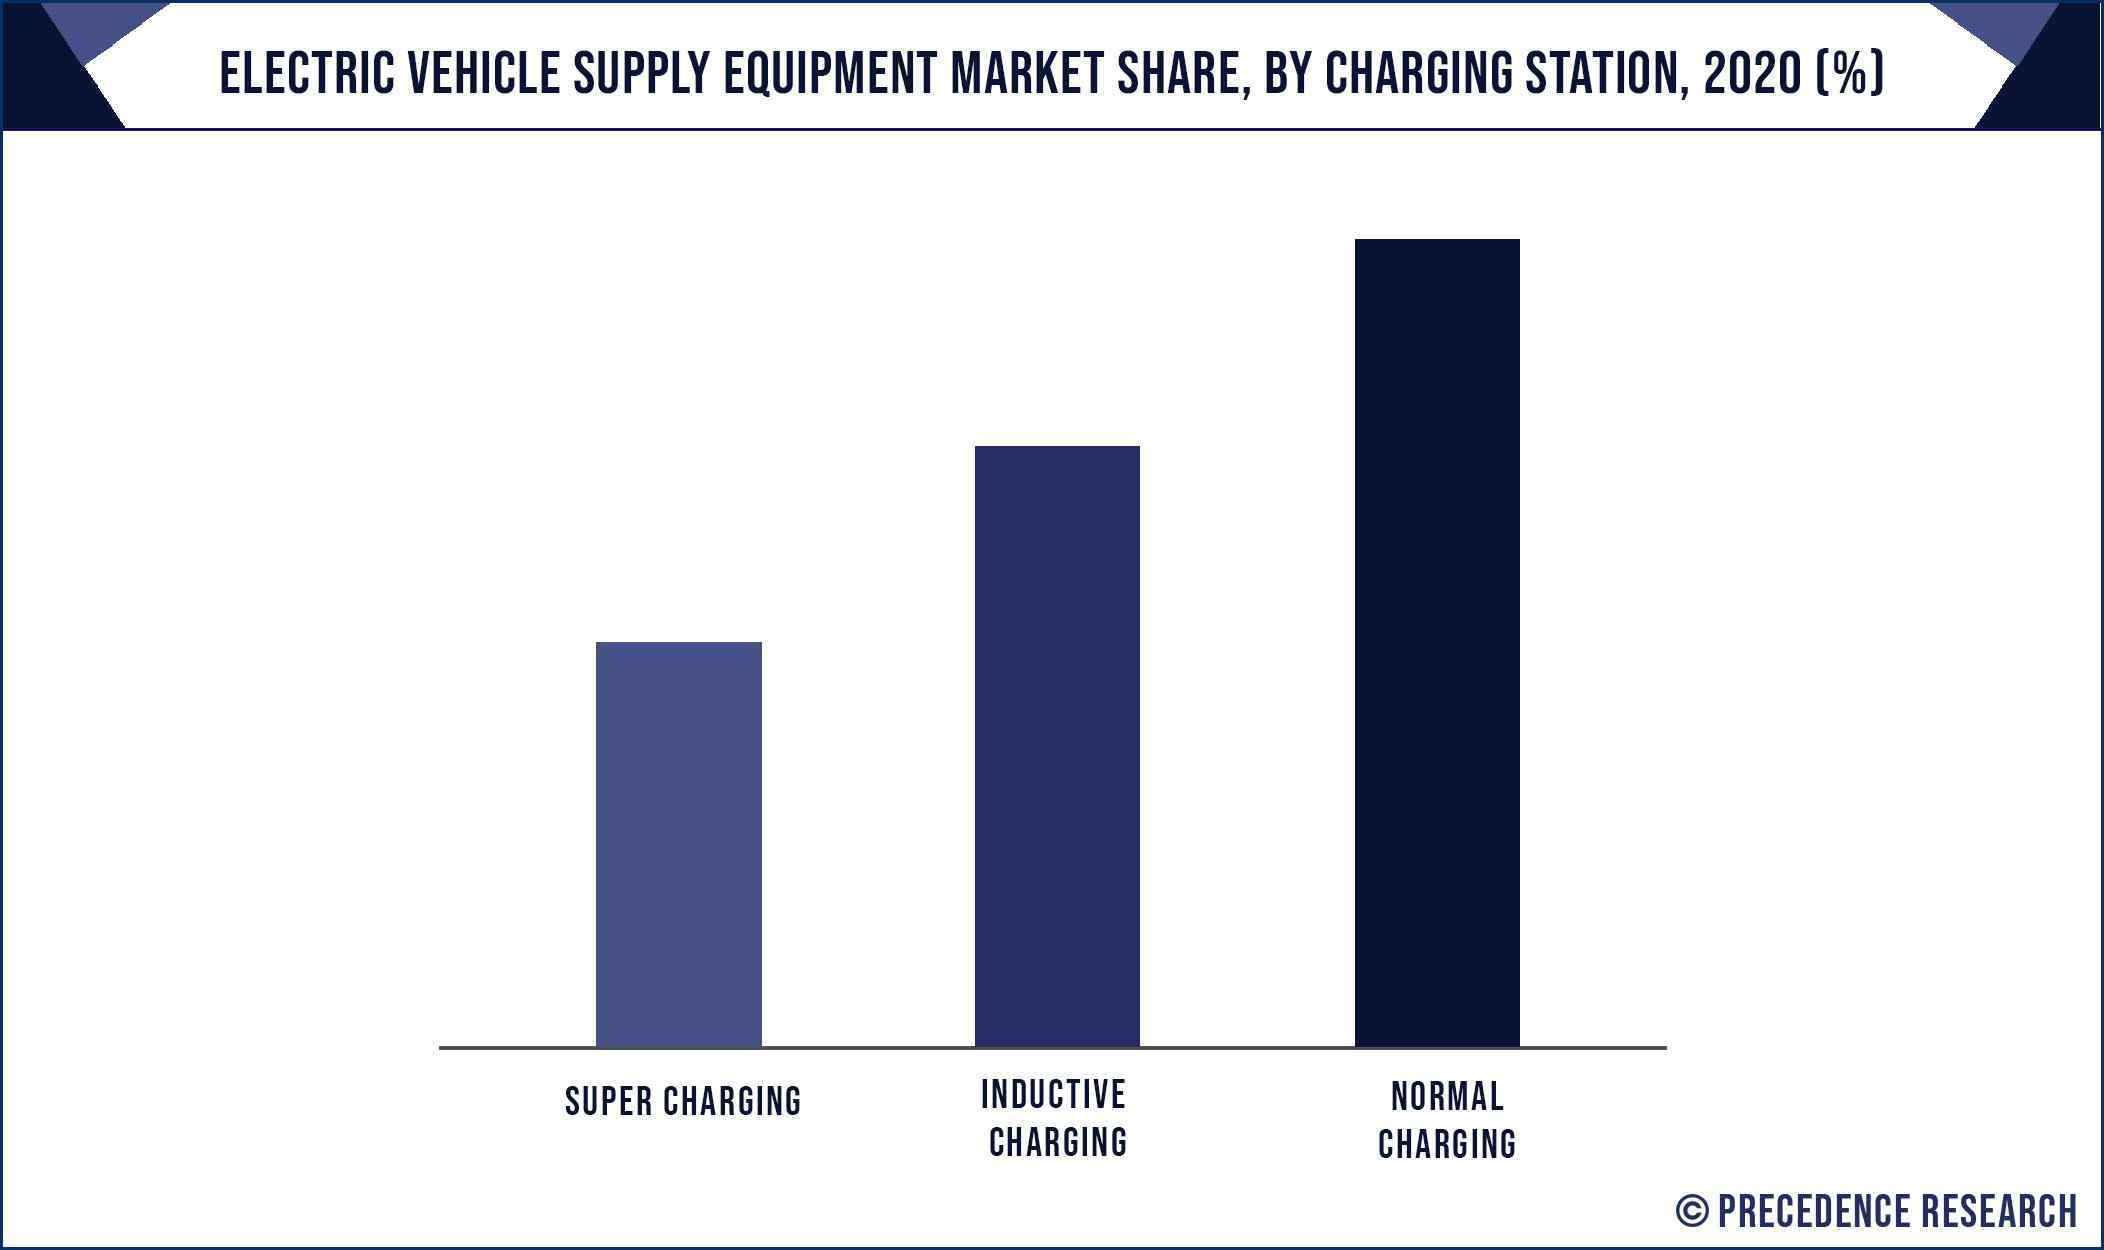 Electric Vehicle Supply Equipment Market Share, By Charging Station, 2020 (%)